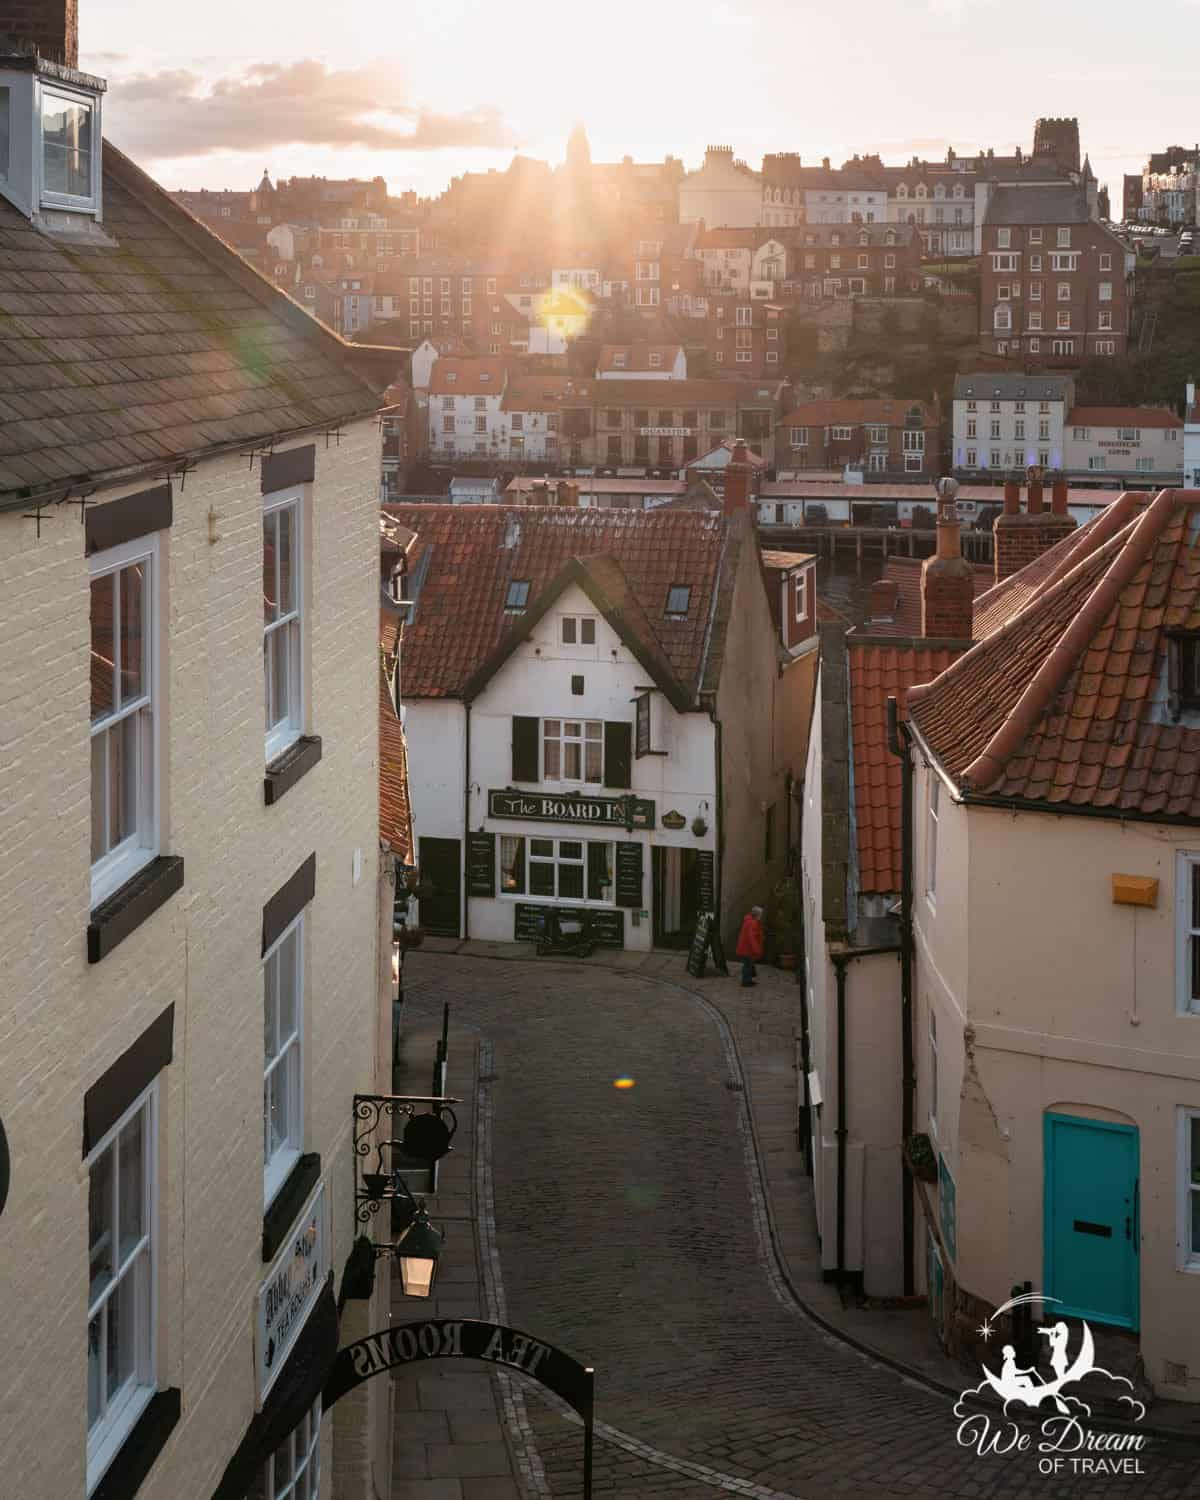 Looking down at The Board Inn from 199 steps Whitby